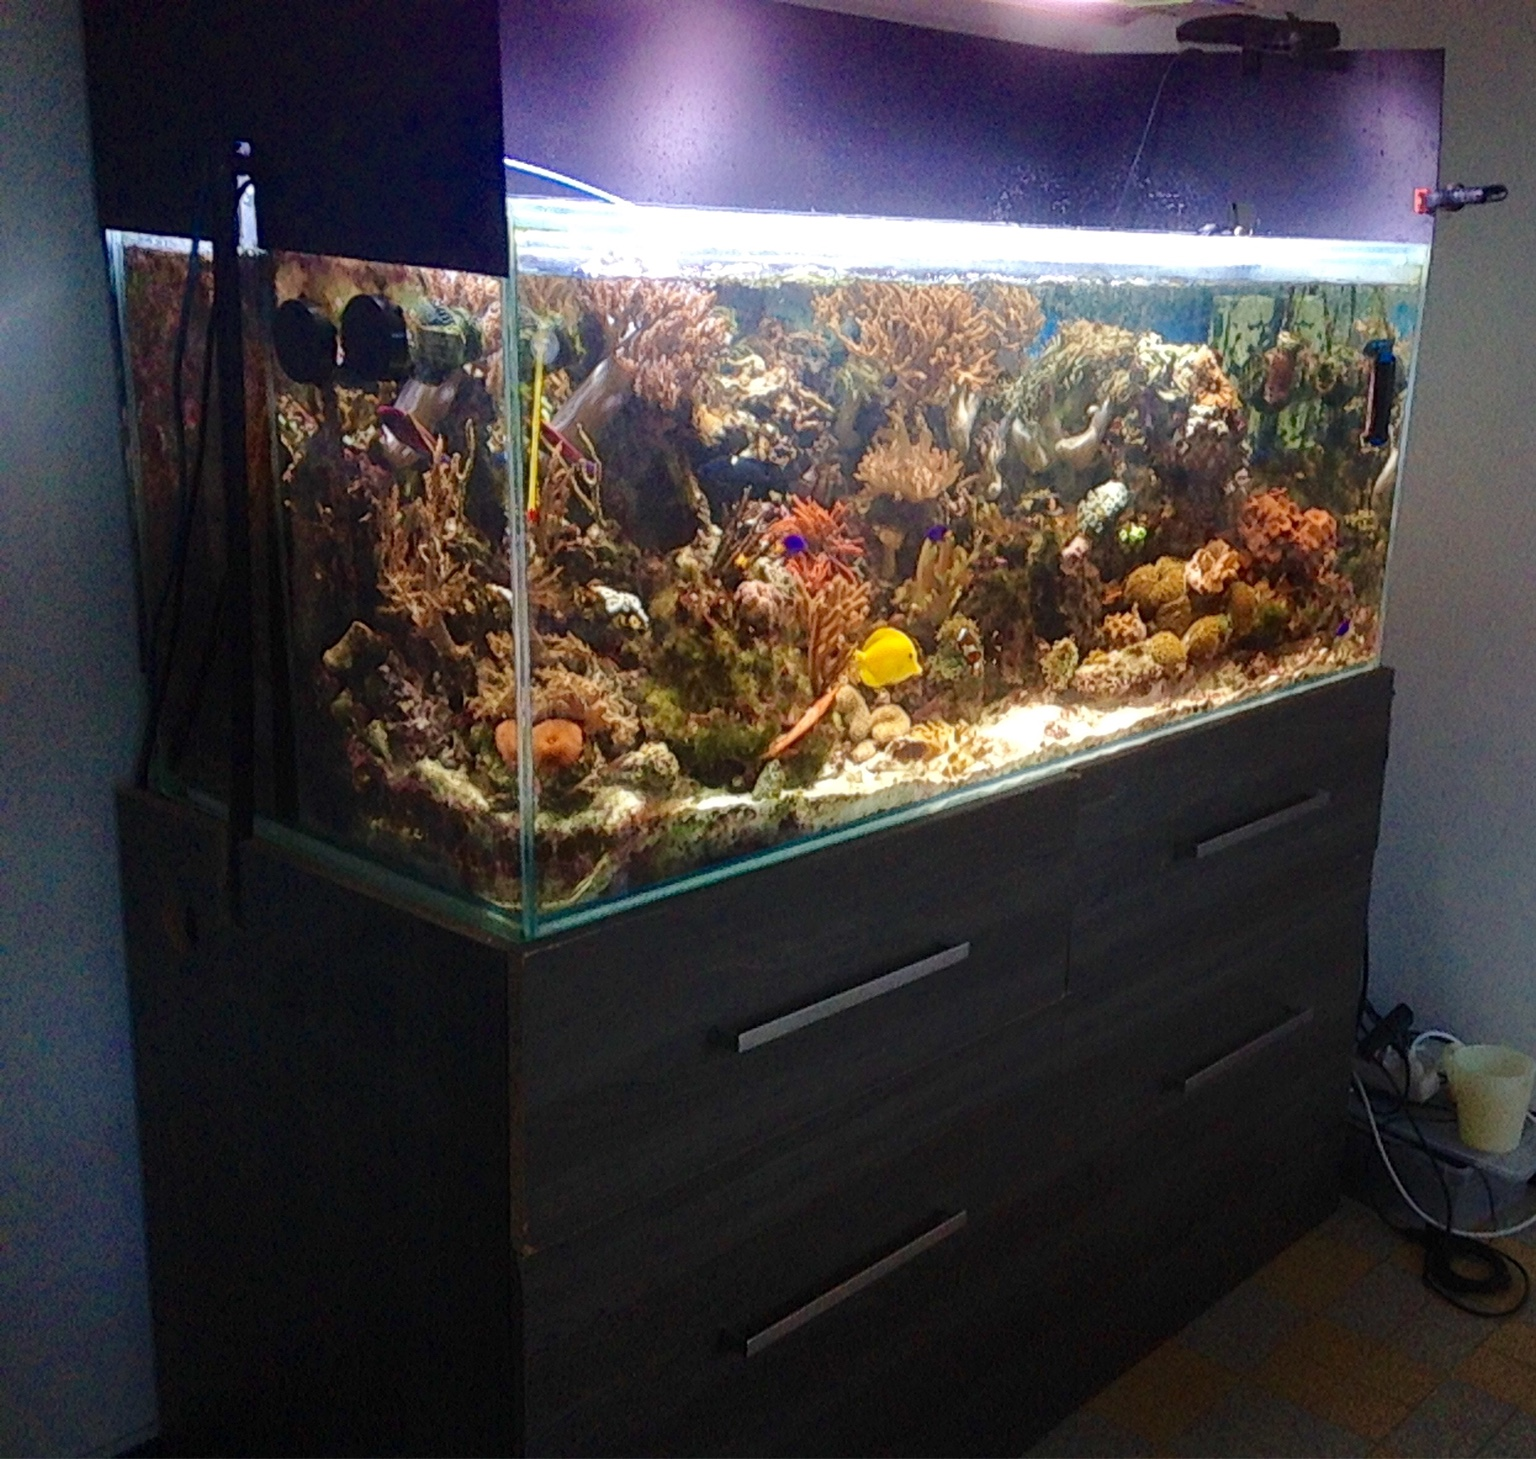 aquarium 540 litres tout quip vendre reef l man aquarium r cifal en suisse. Black Bedroom Furniture Sets. Home Design Ideas